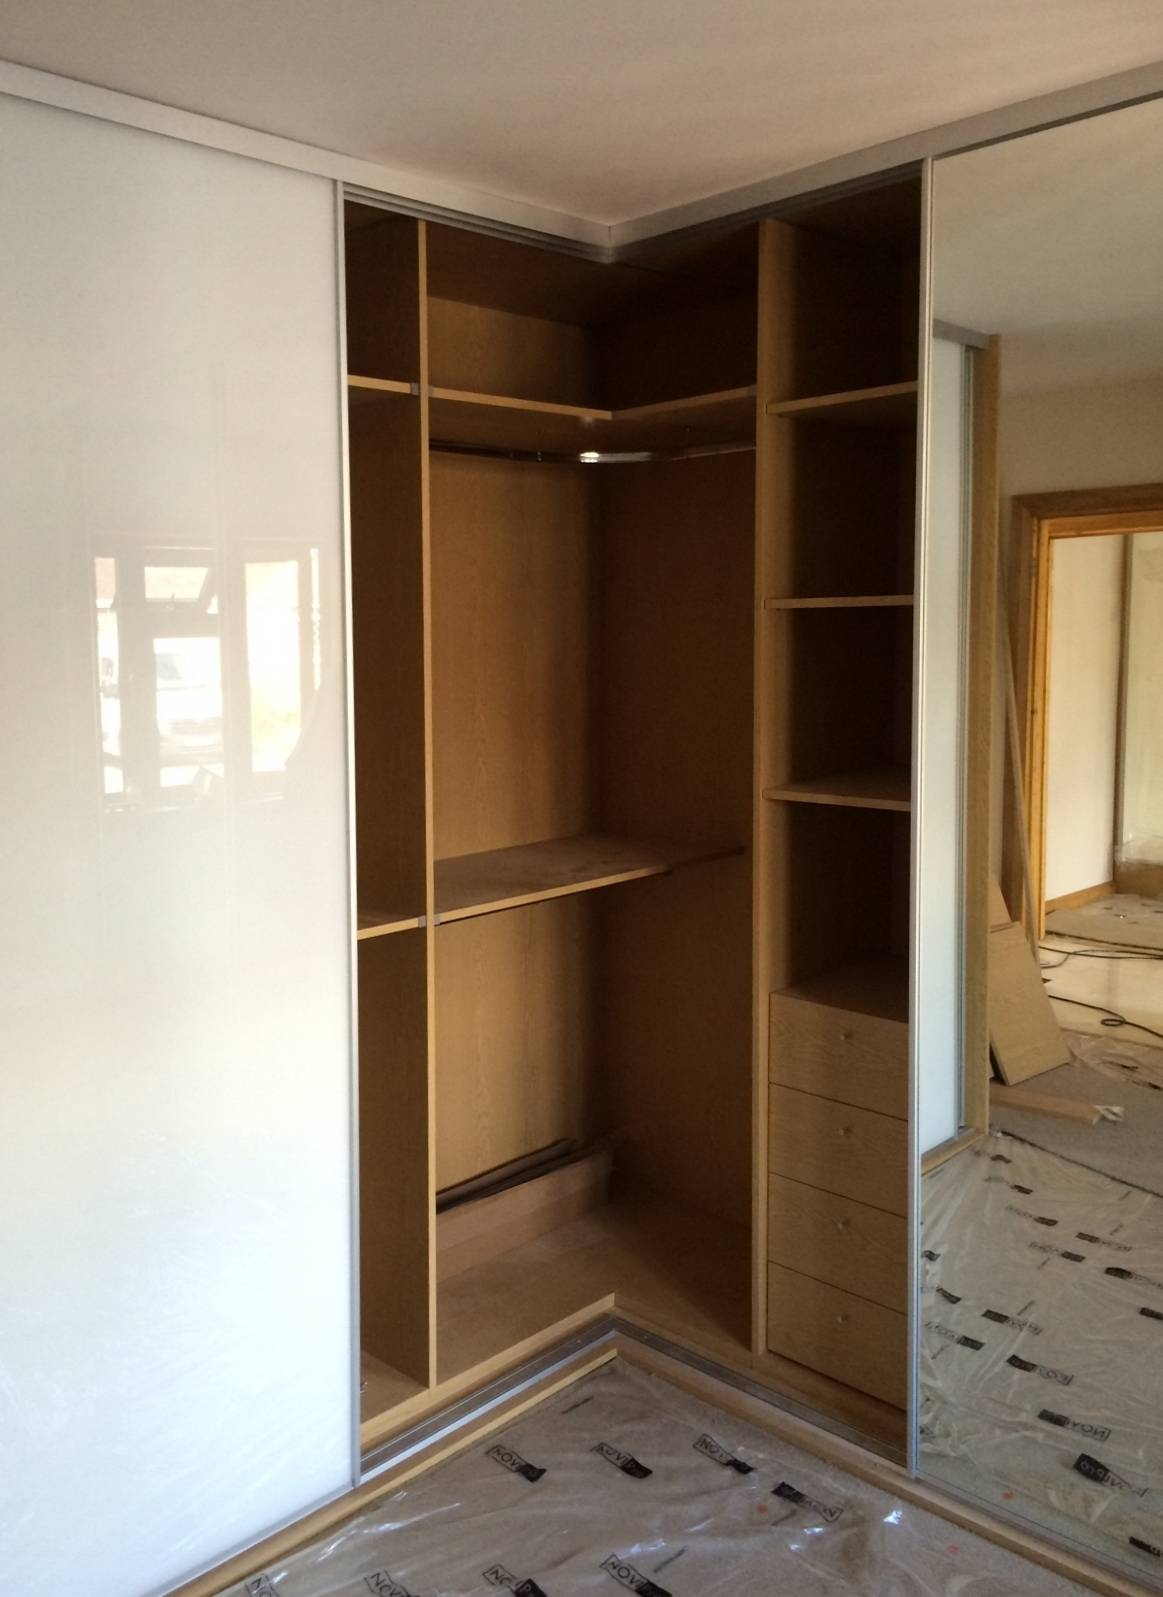 Sliding Wardrobe Doors And Wardrobe Interiors | Corner & L Shaped inside Curved Corner Wardrobe Doors (Image 29 of 30)